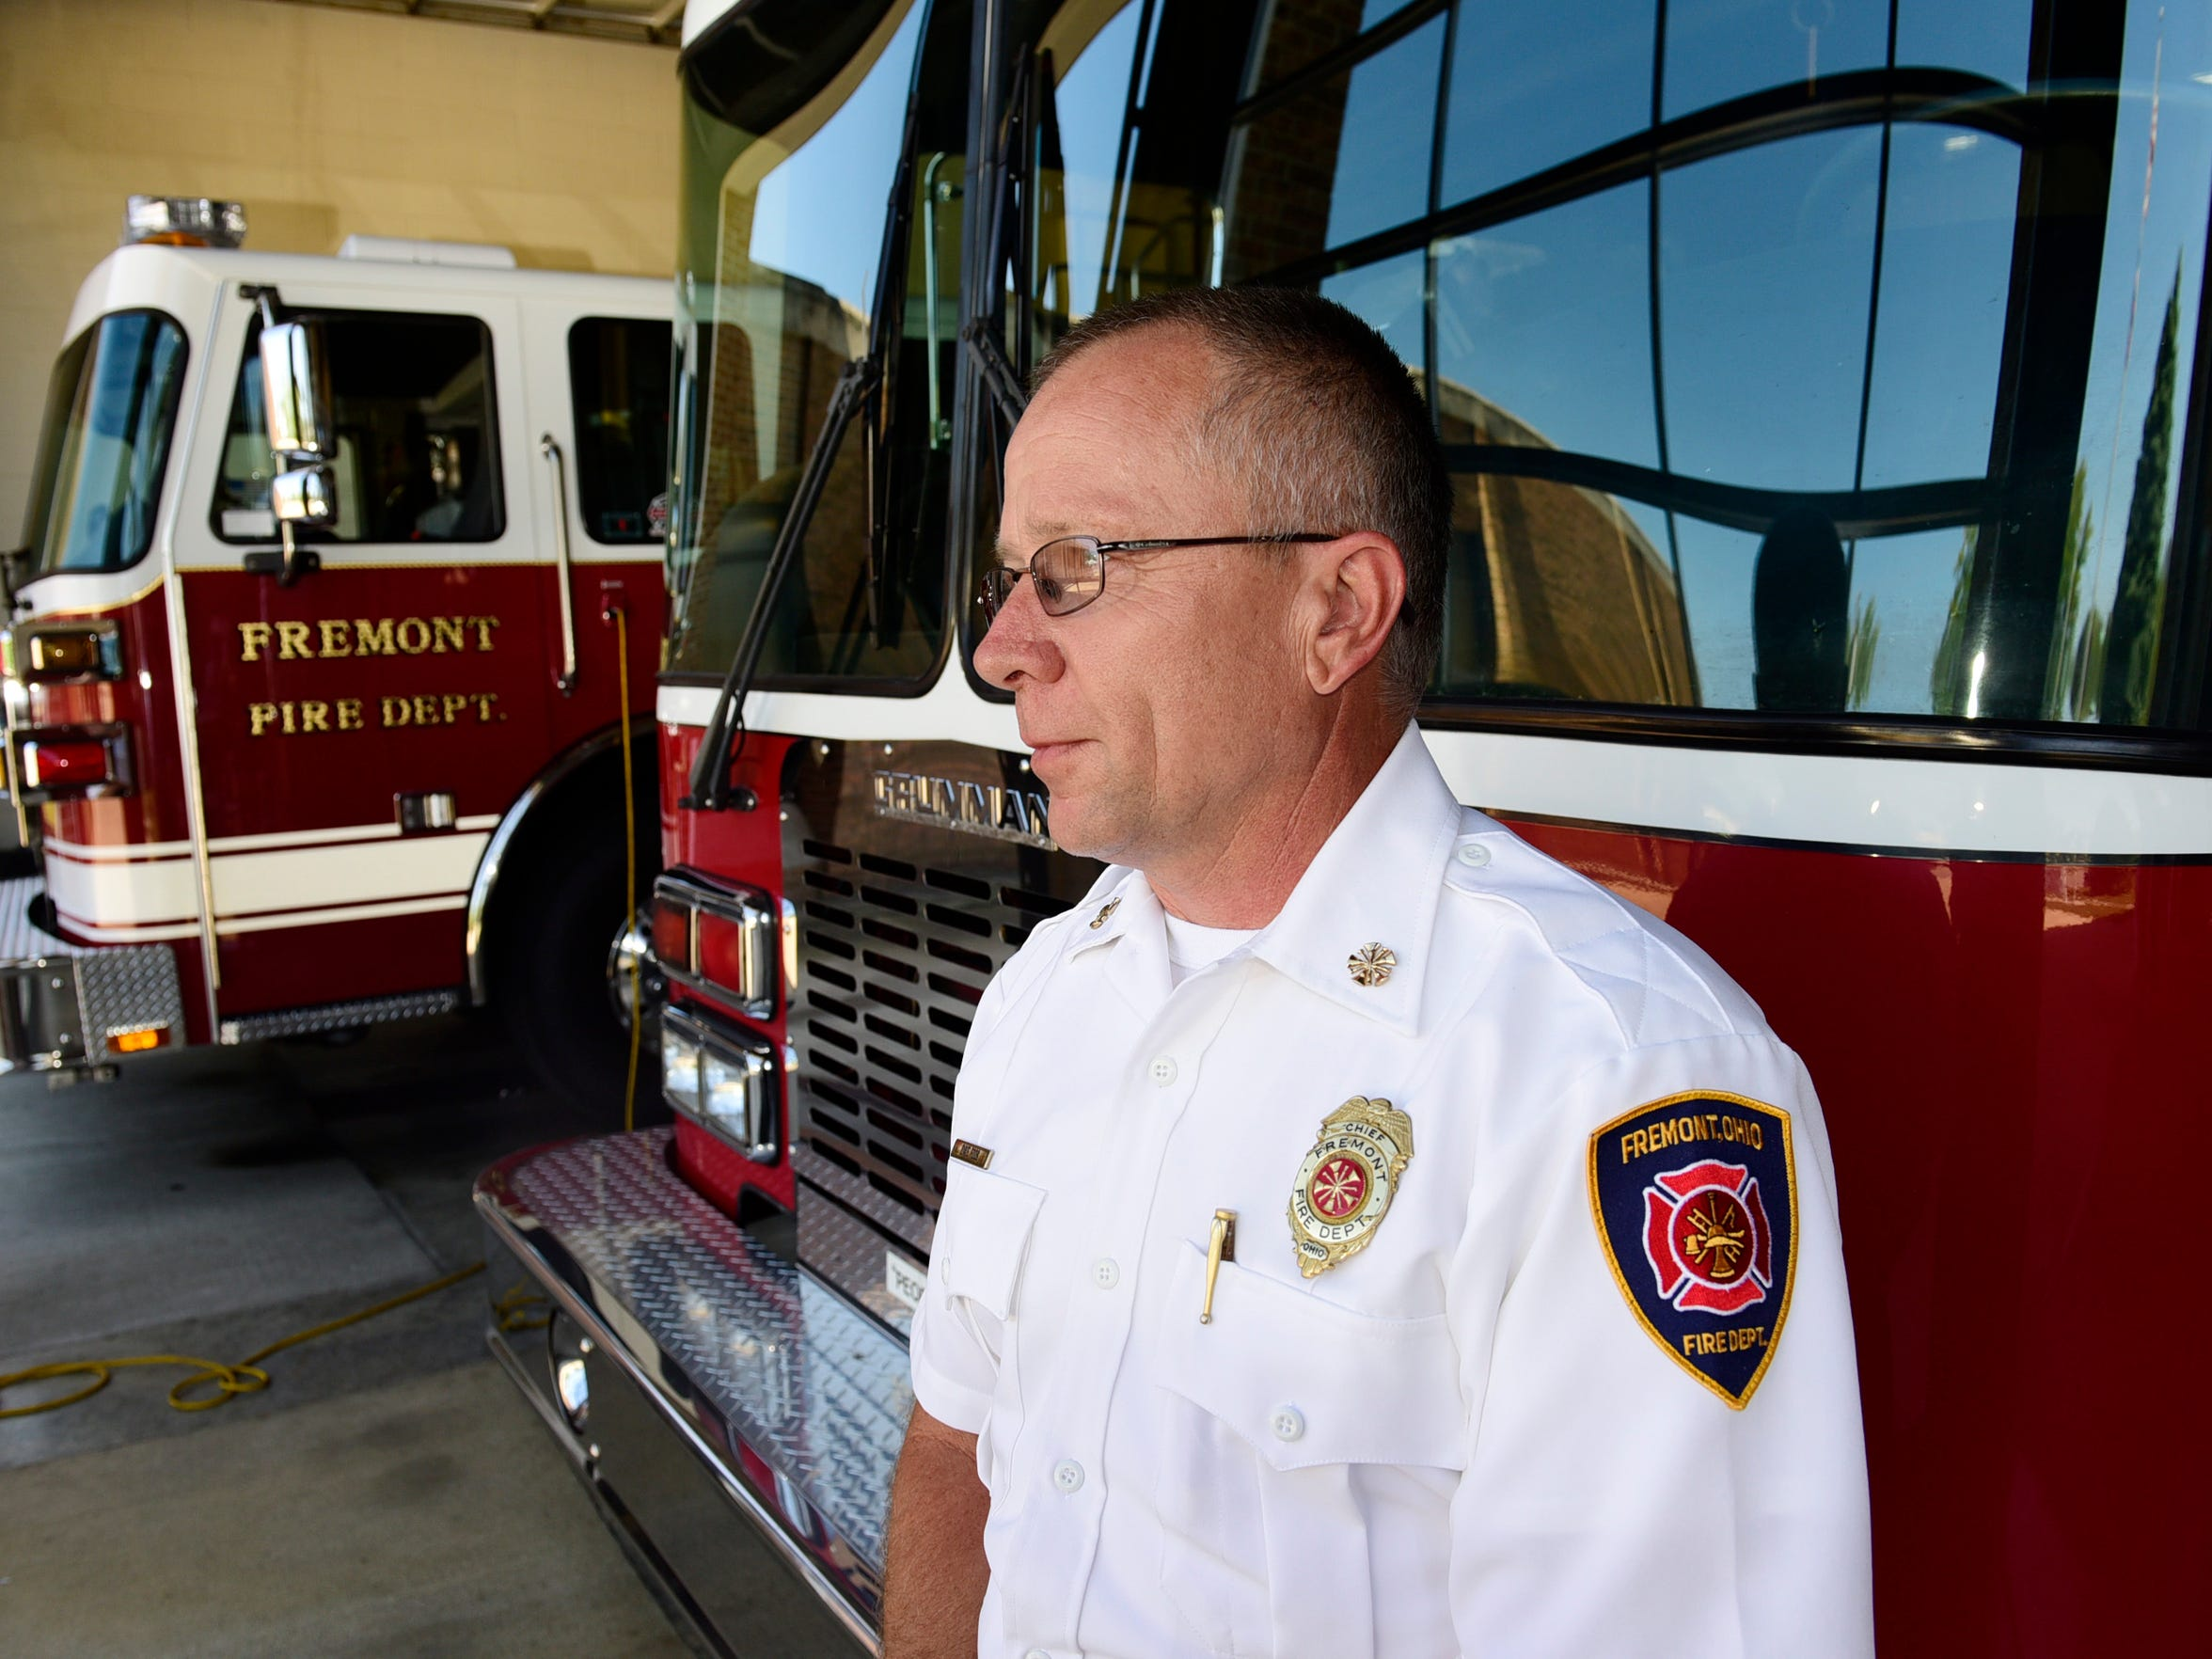 Fremont Fire Chief David Foos lost one of his firefighters